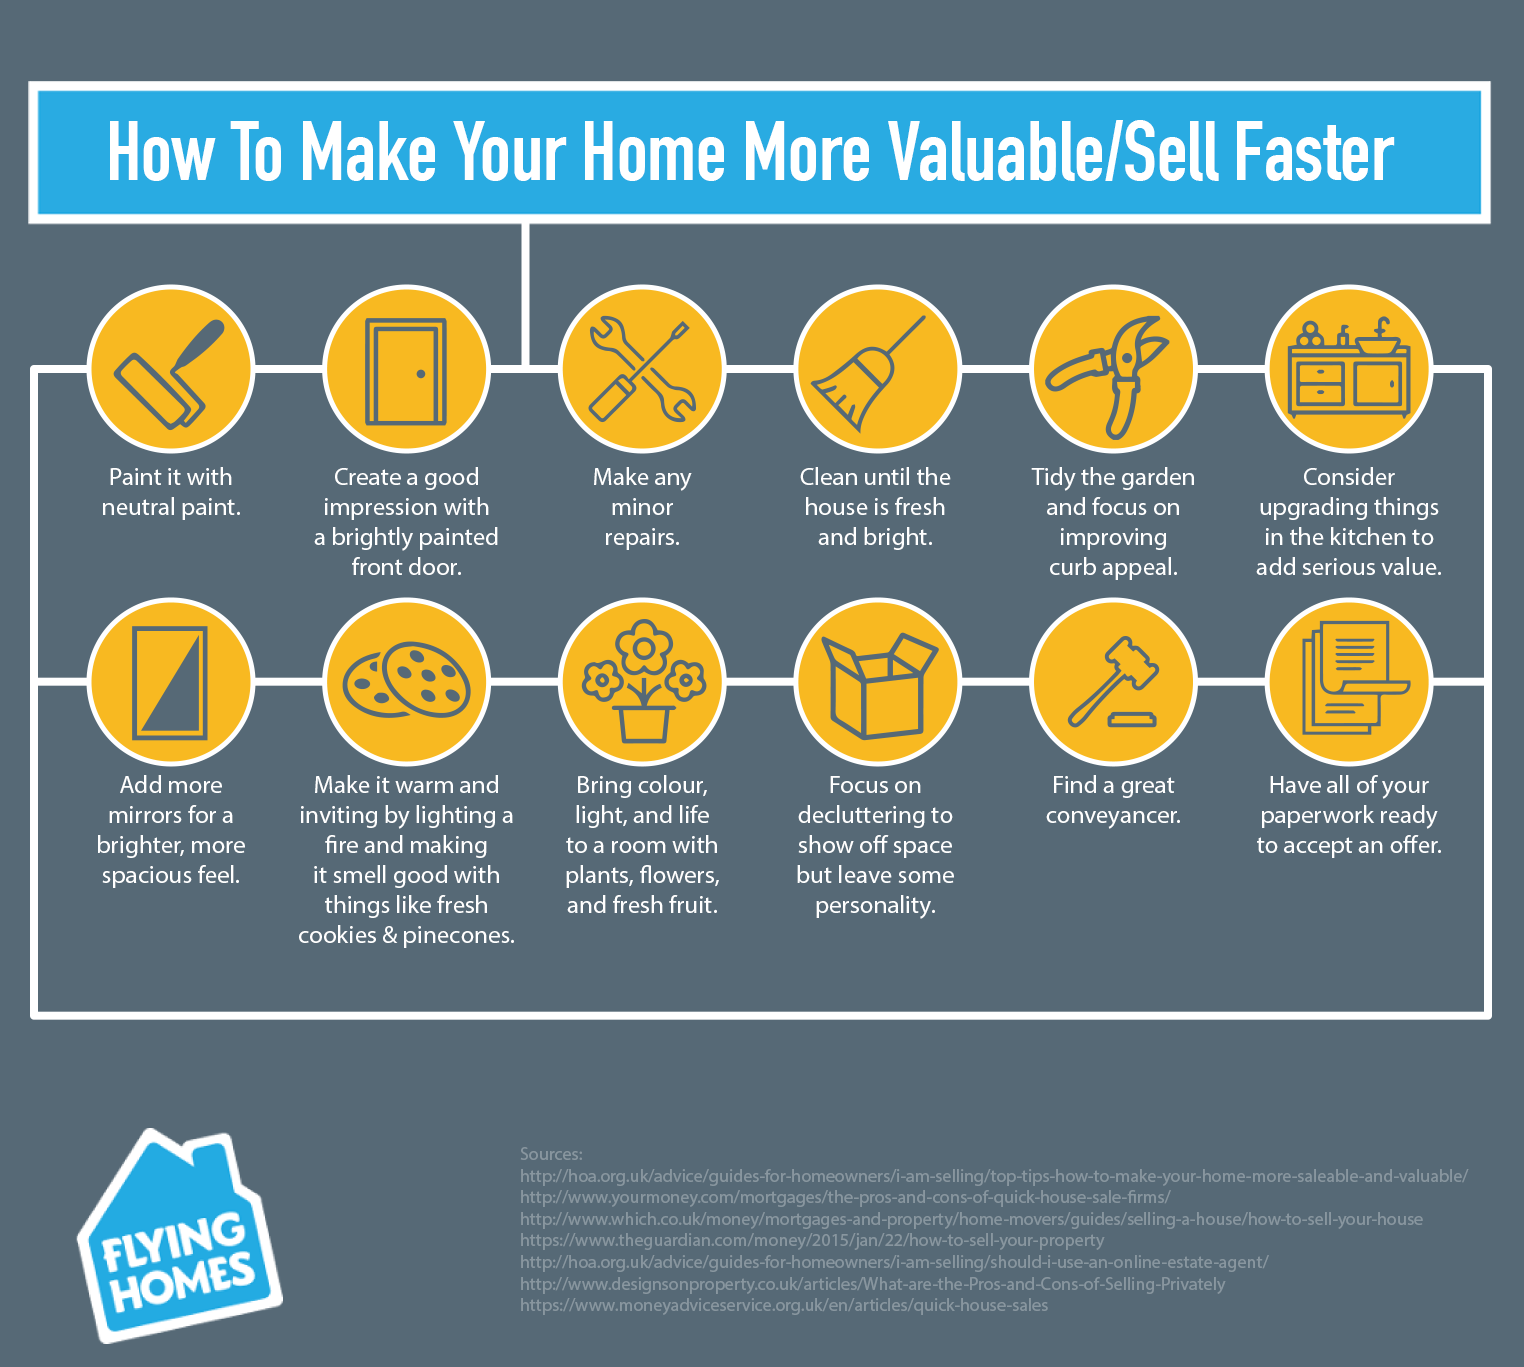 12 tips to increase home values sell faster flying homes for How to increase home value